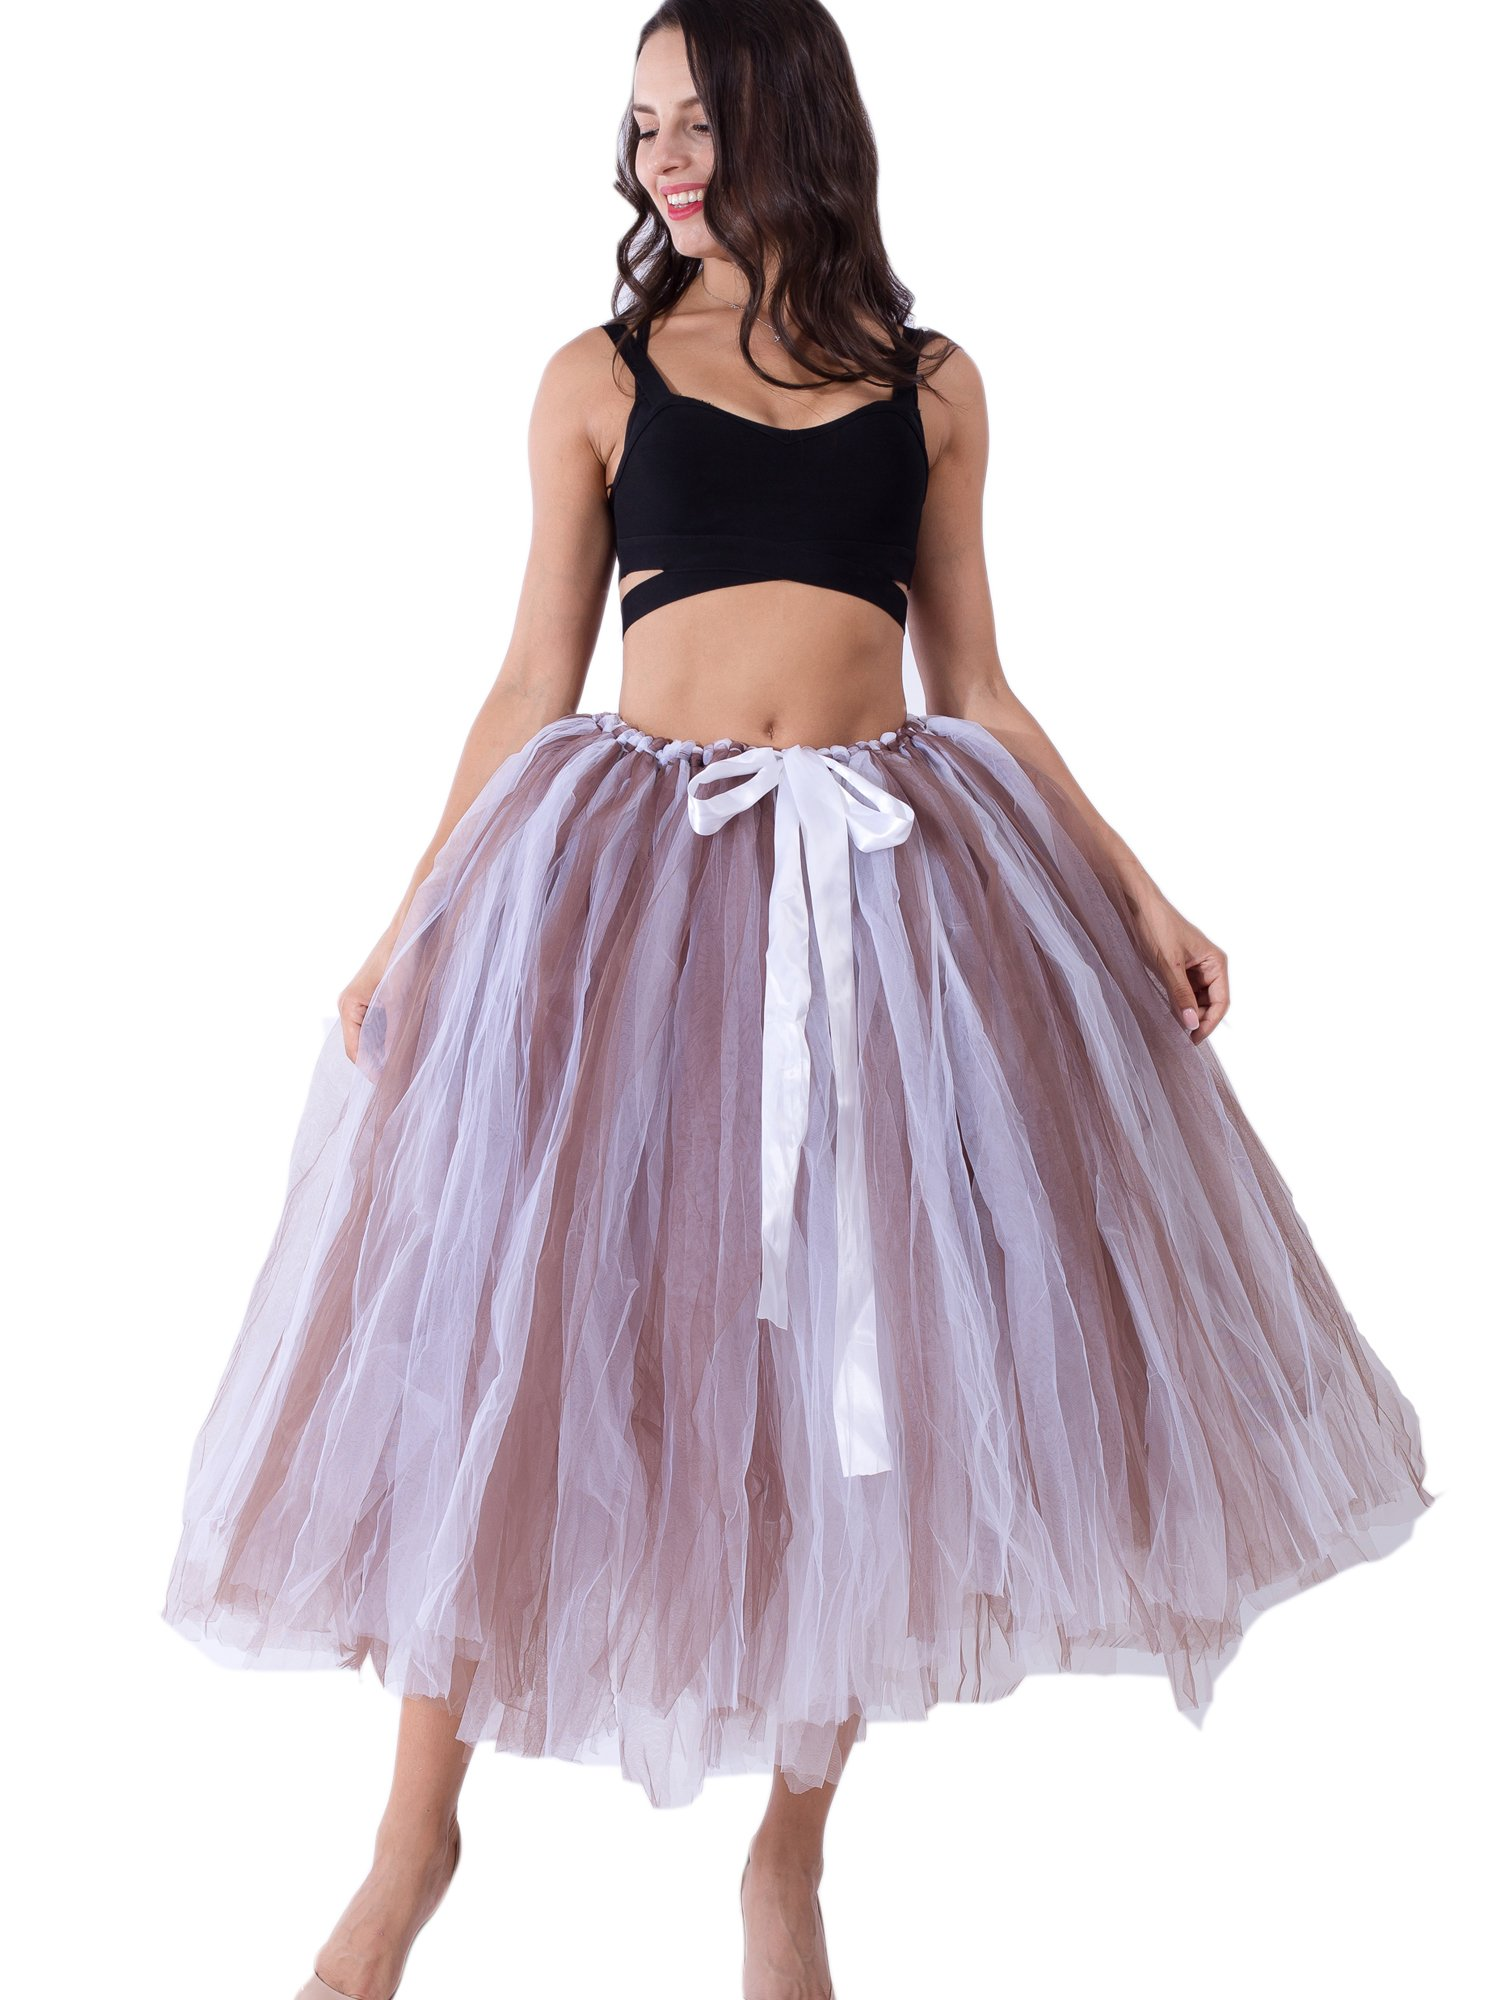 Dorchid Women Tutu Tulle Skirt Wedding Costume Party Self Tie Plus Size Brown White by Dorchid